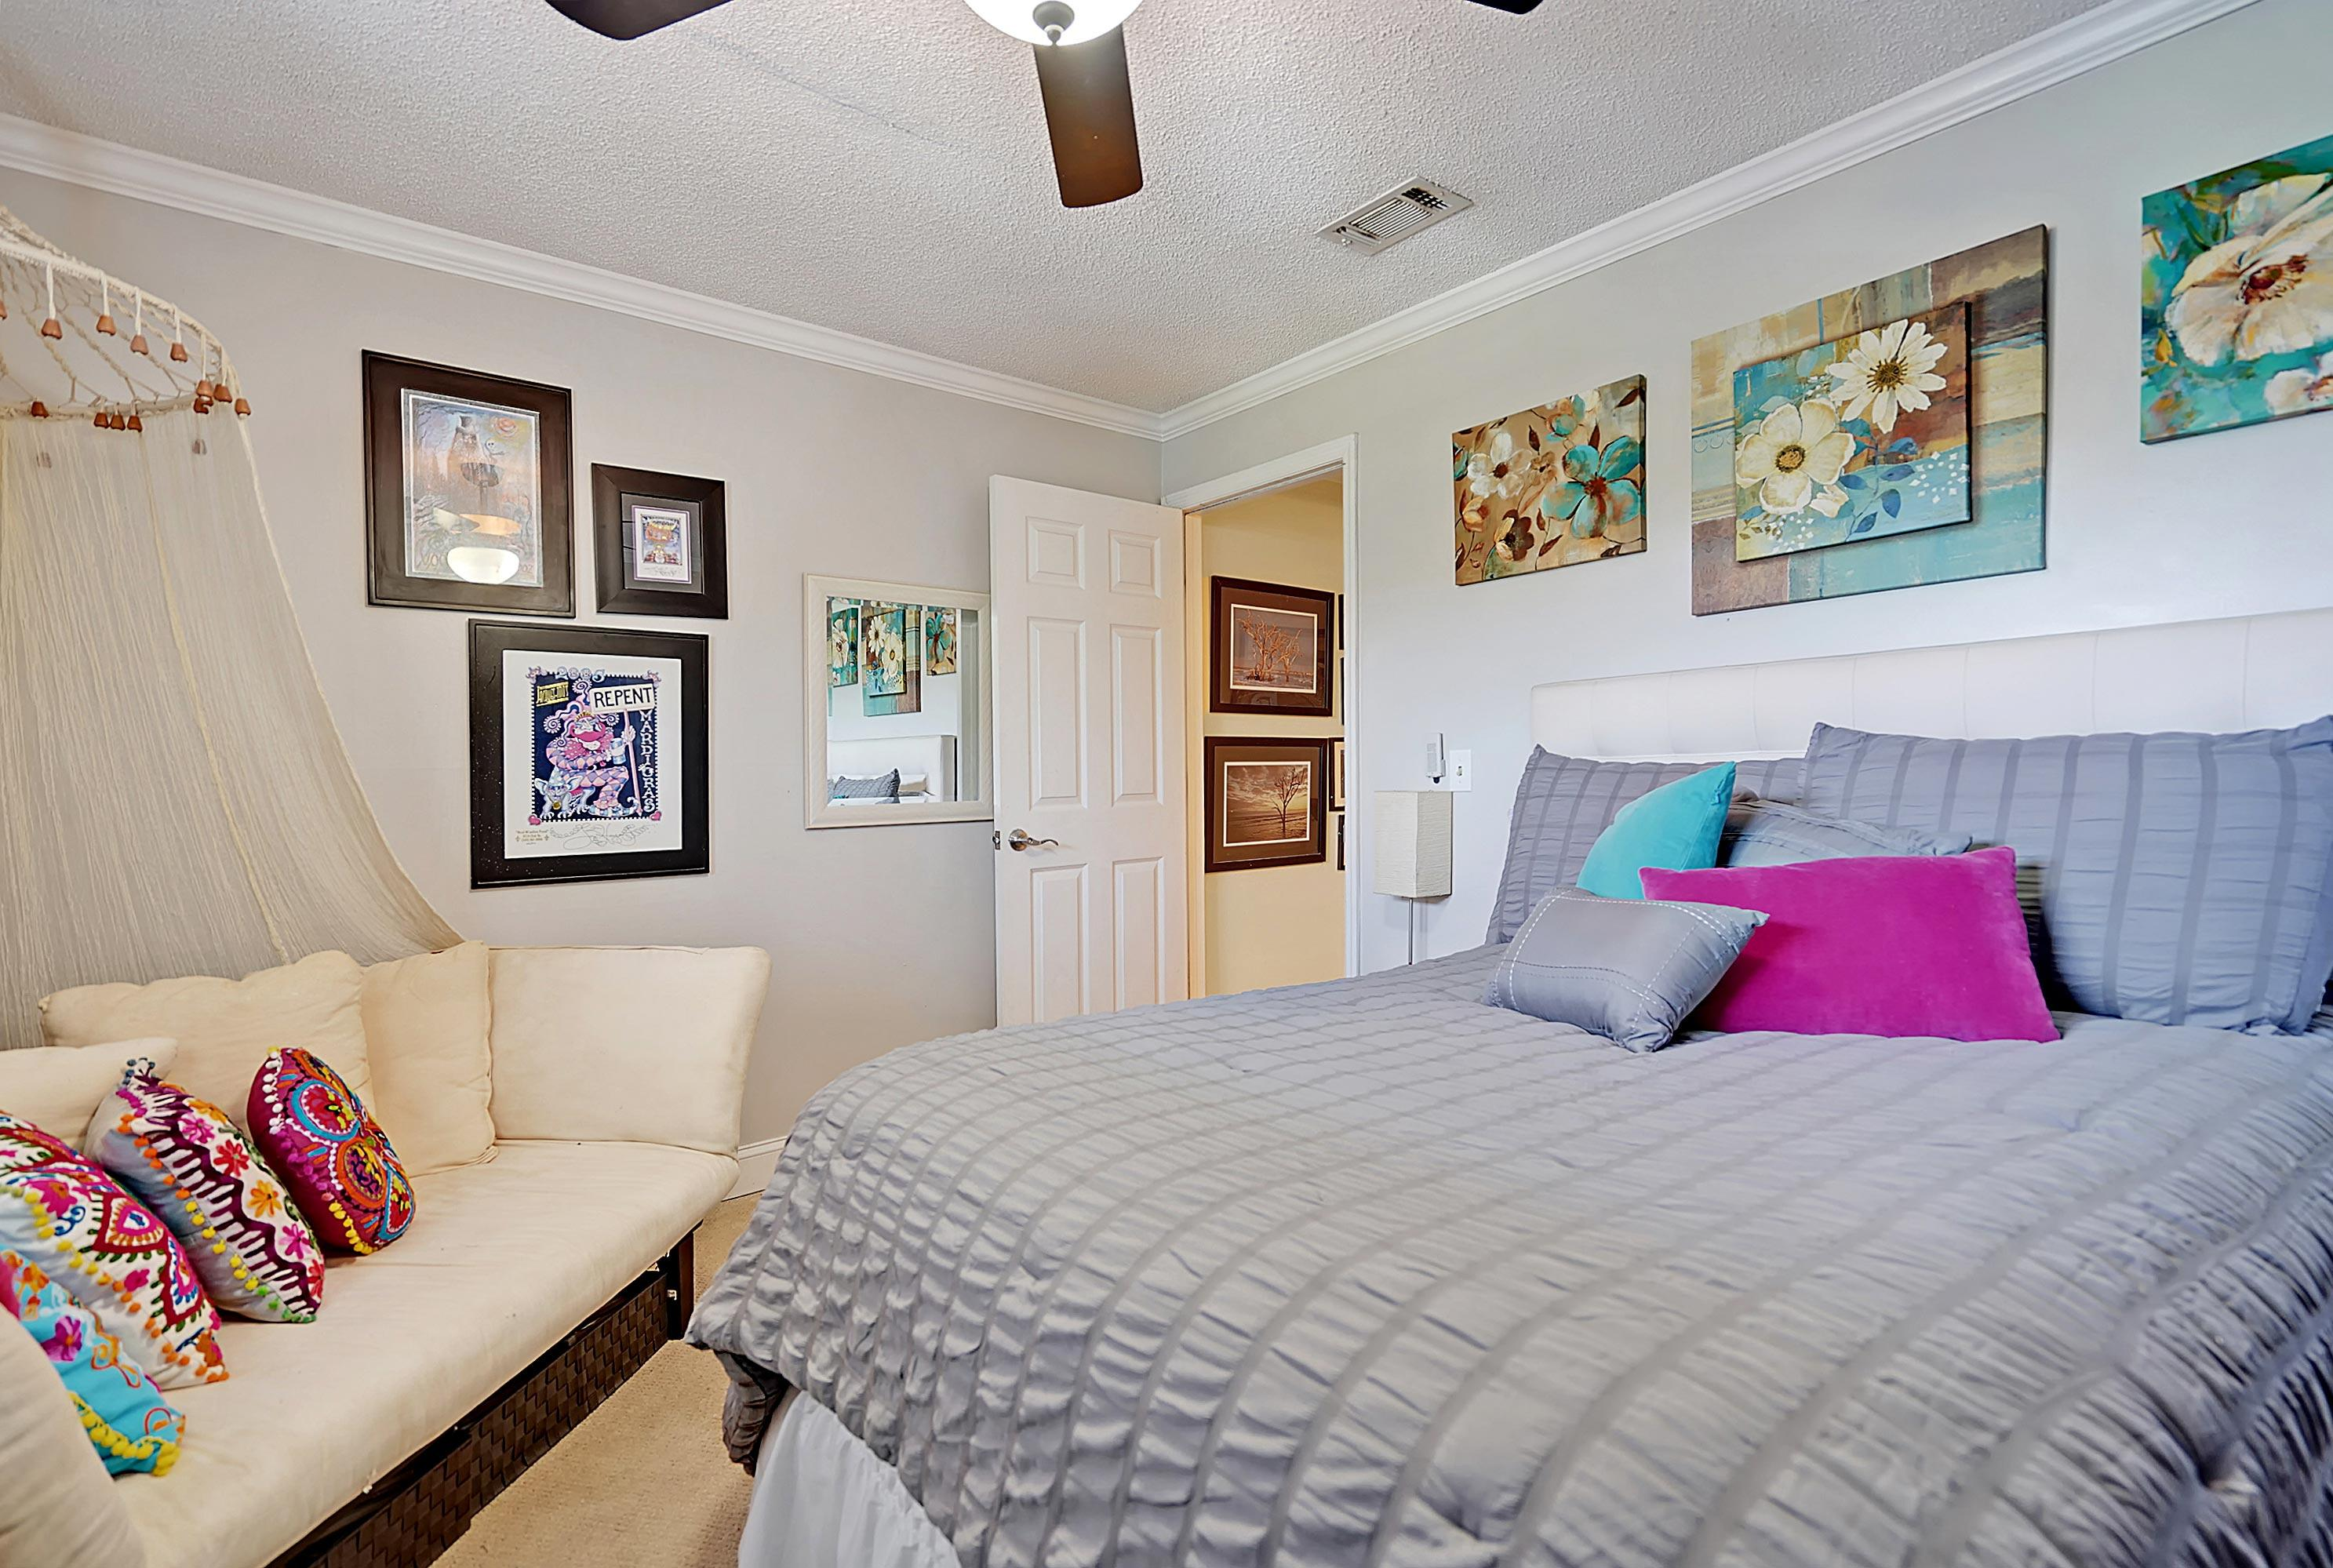 Mariners Cay Homes For Sale - 63 Mariners Cay, Folly Beach, SC - 22